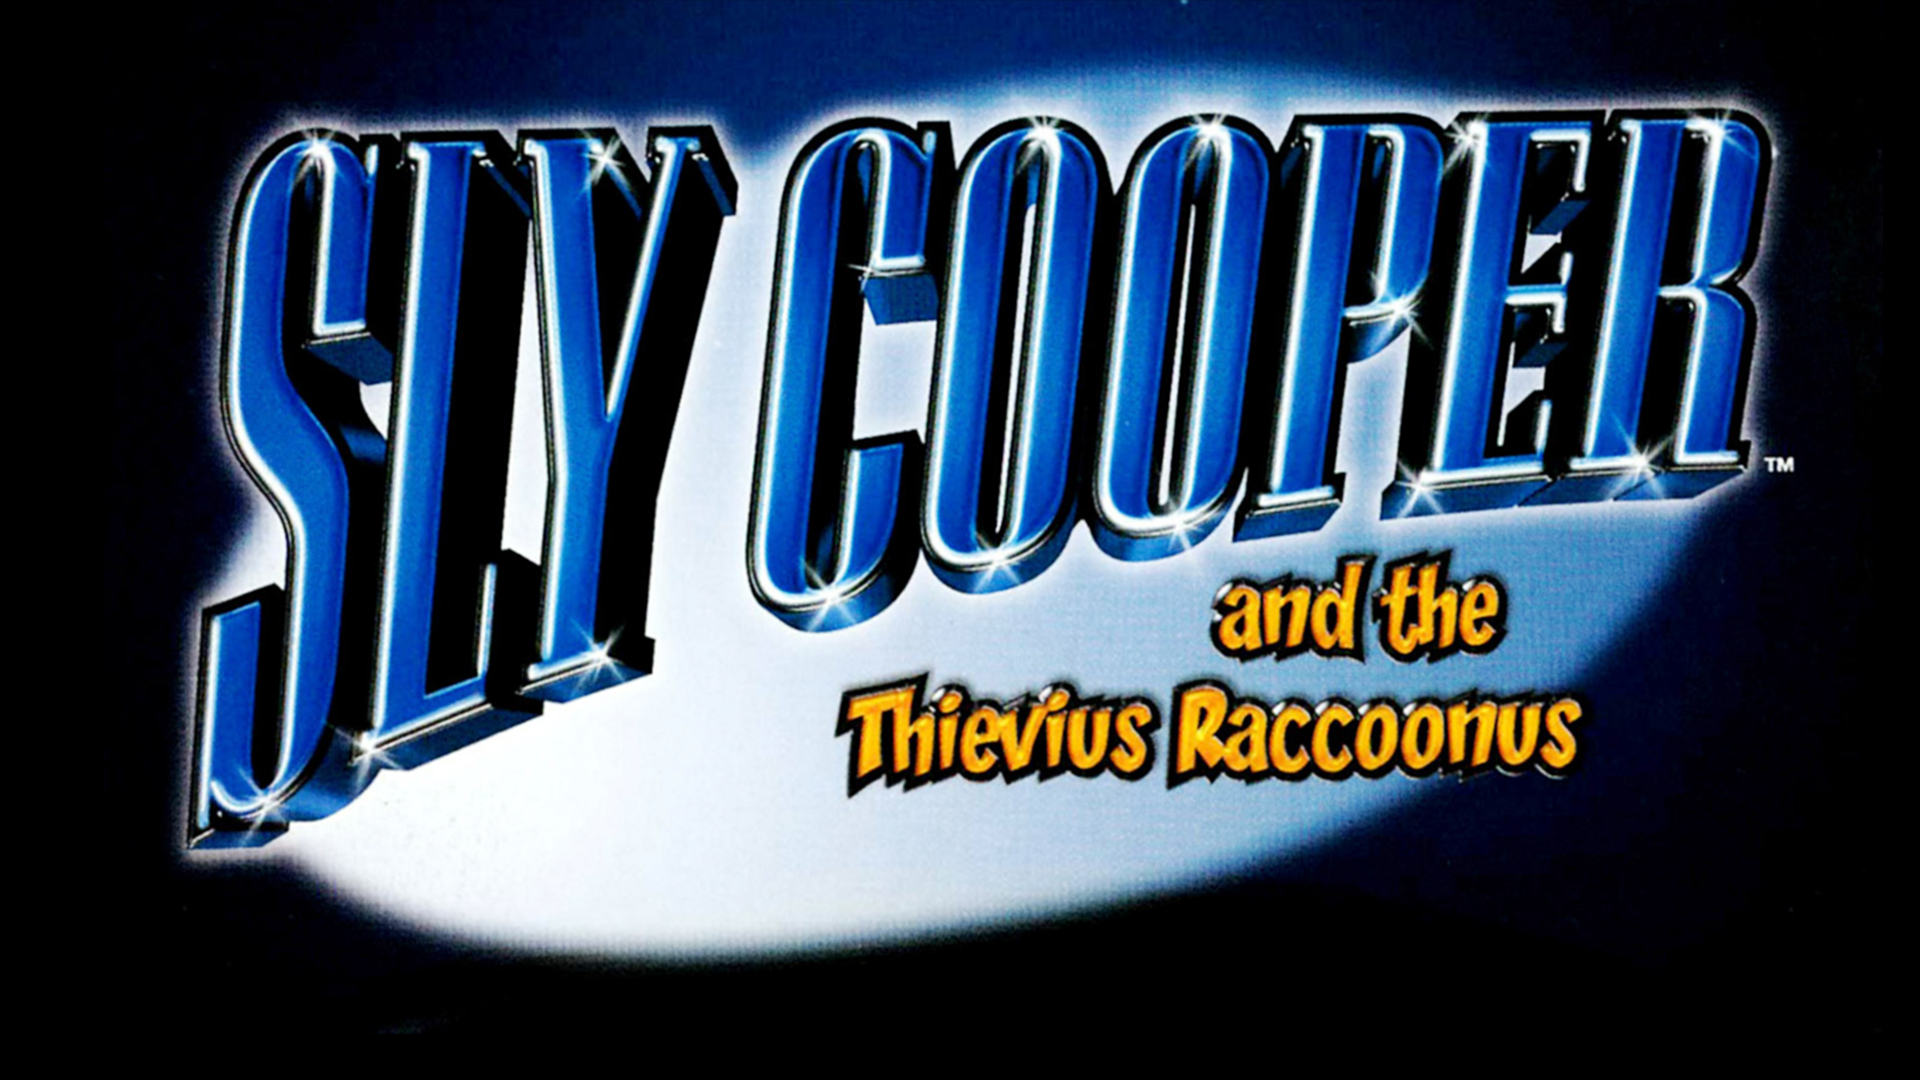 Sly Cooper and the Thievius Raccoonus Logo